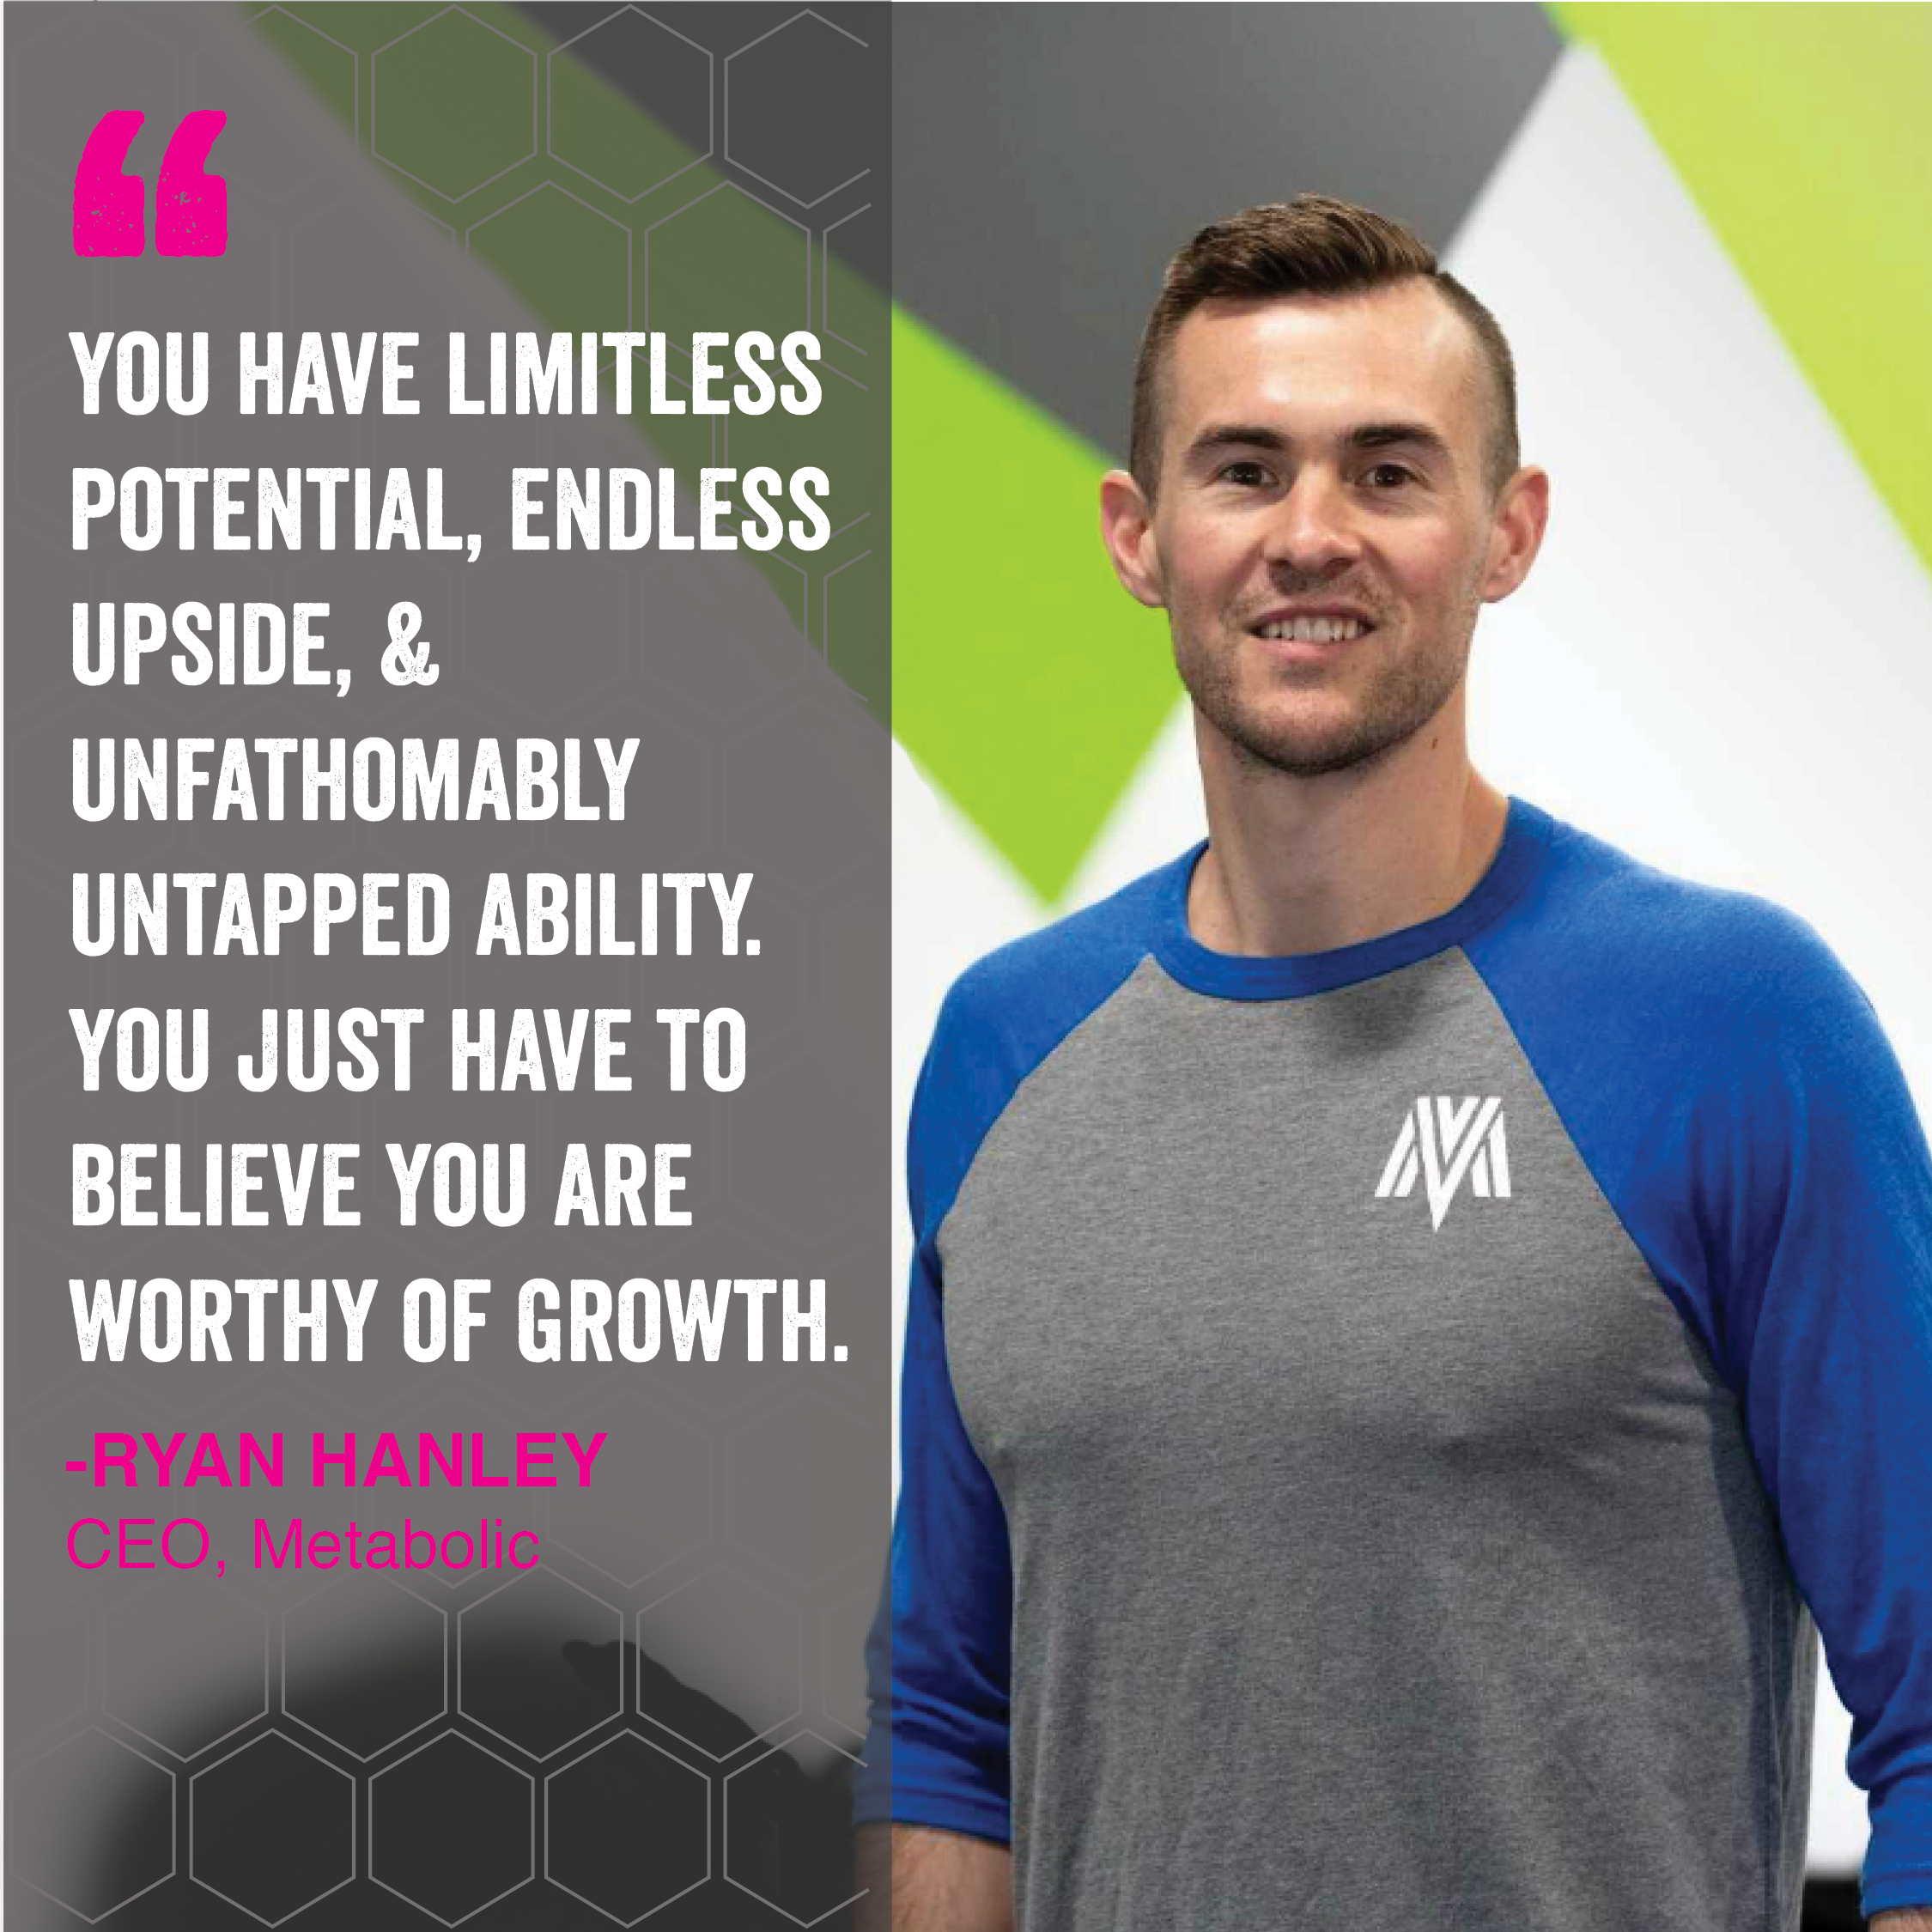 We have limitless potential, endless upside, & unfathomoably untapped ability. You just have to believe you are worthy of growth - ryan hanley, CEO, Metabolic